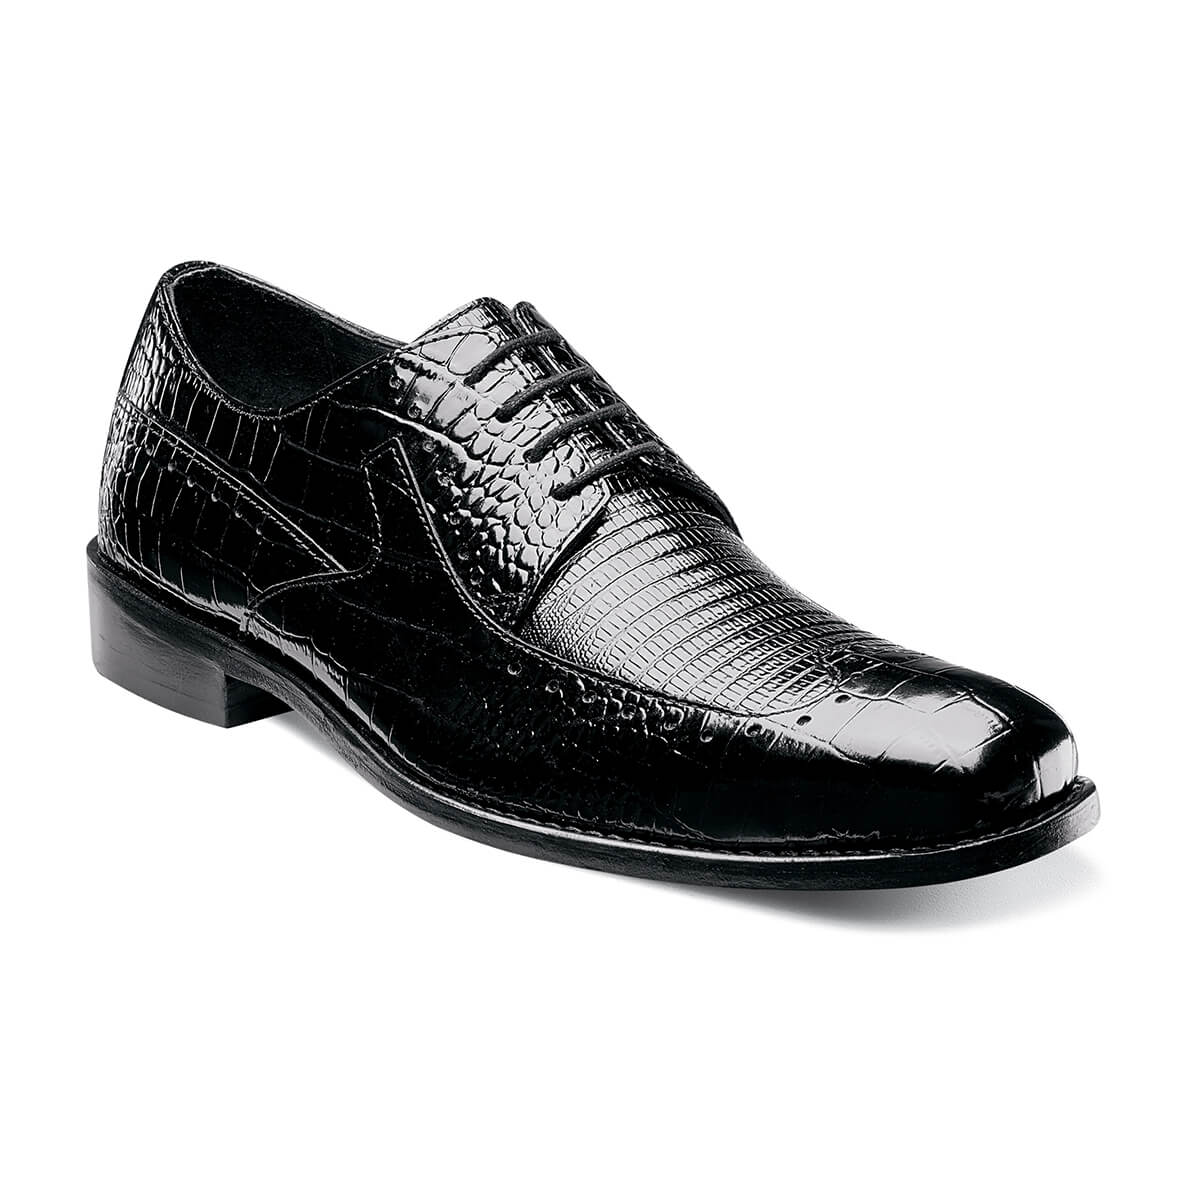 Portello Wingtip Oxford